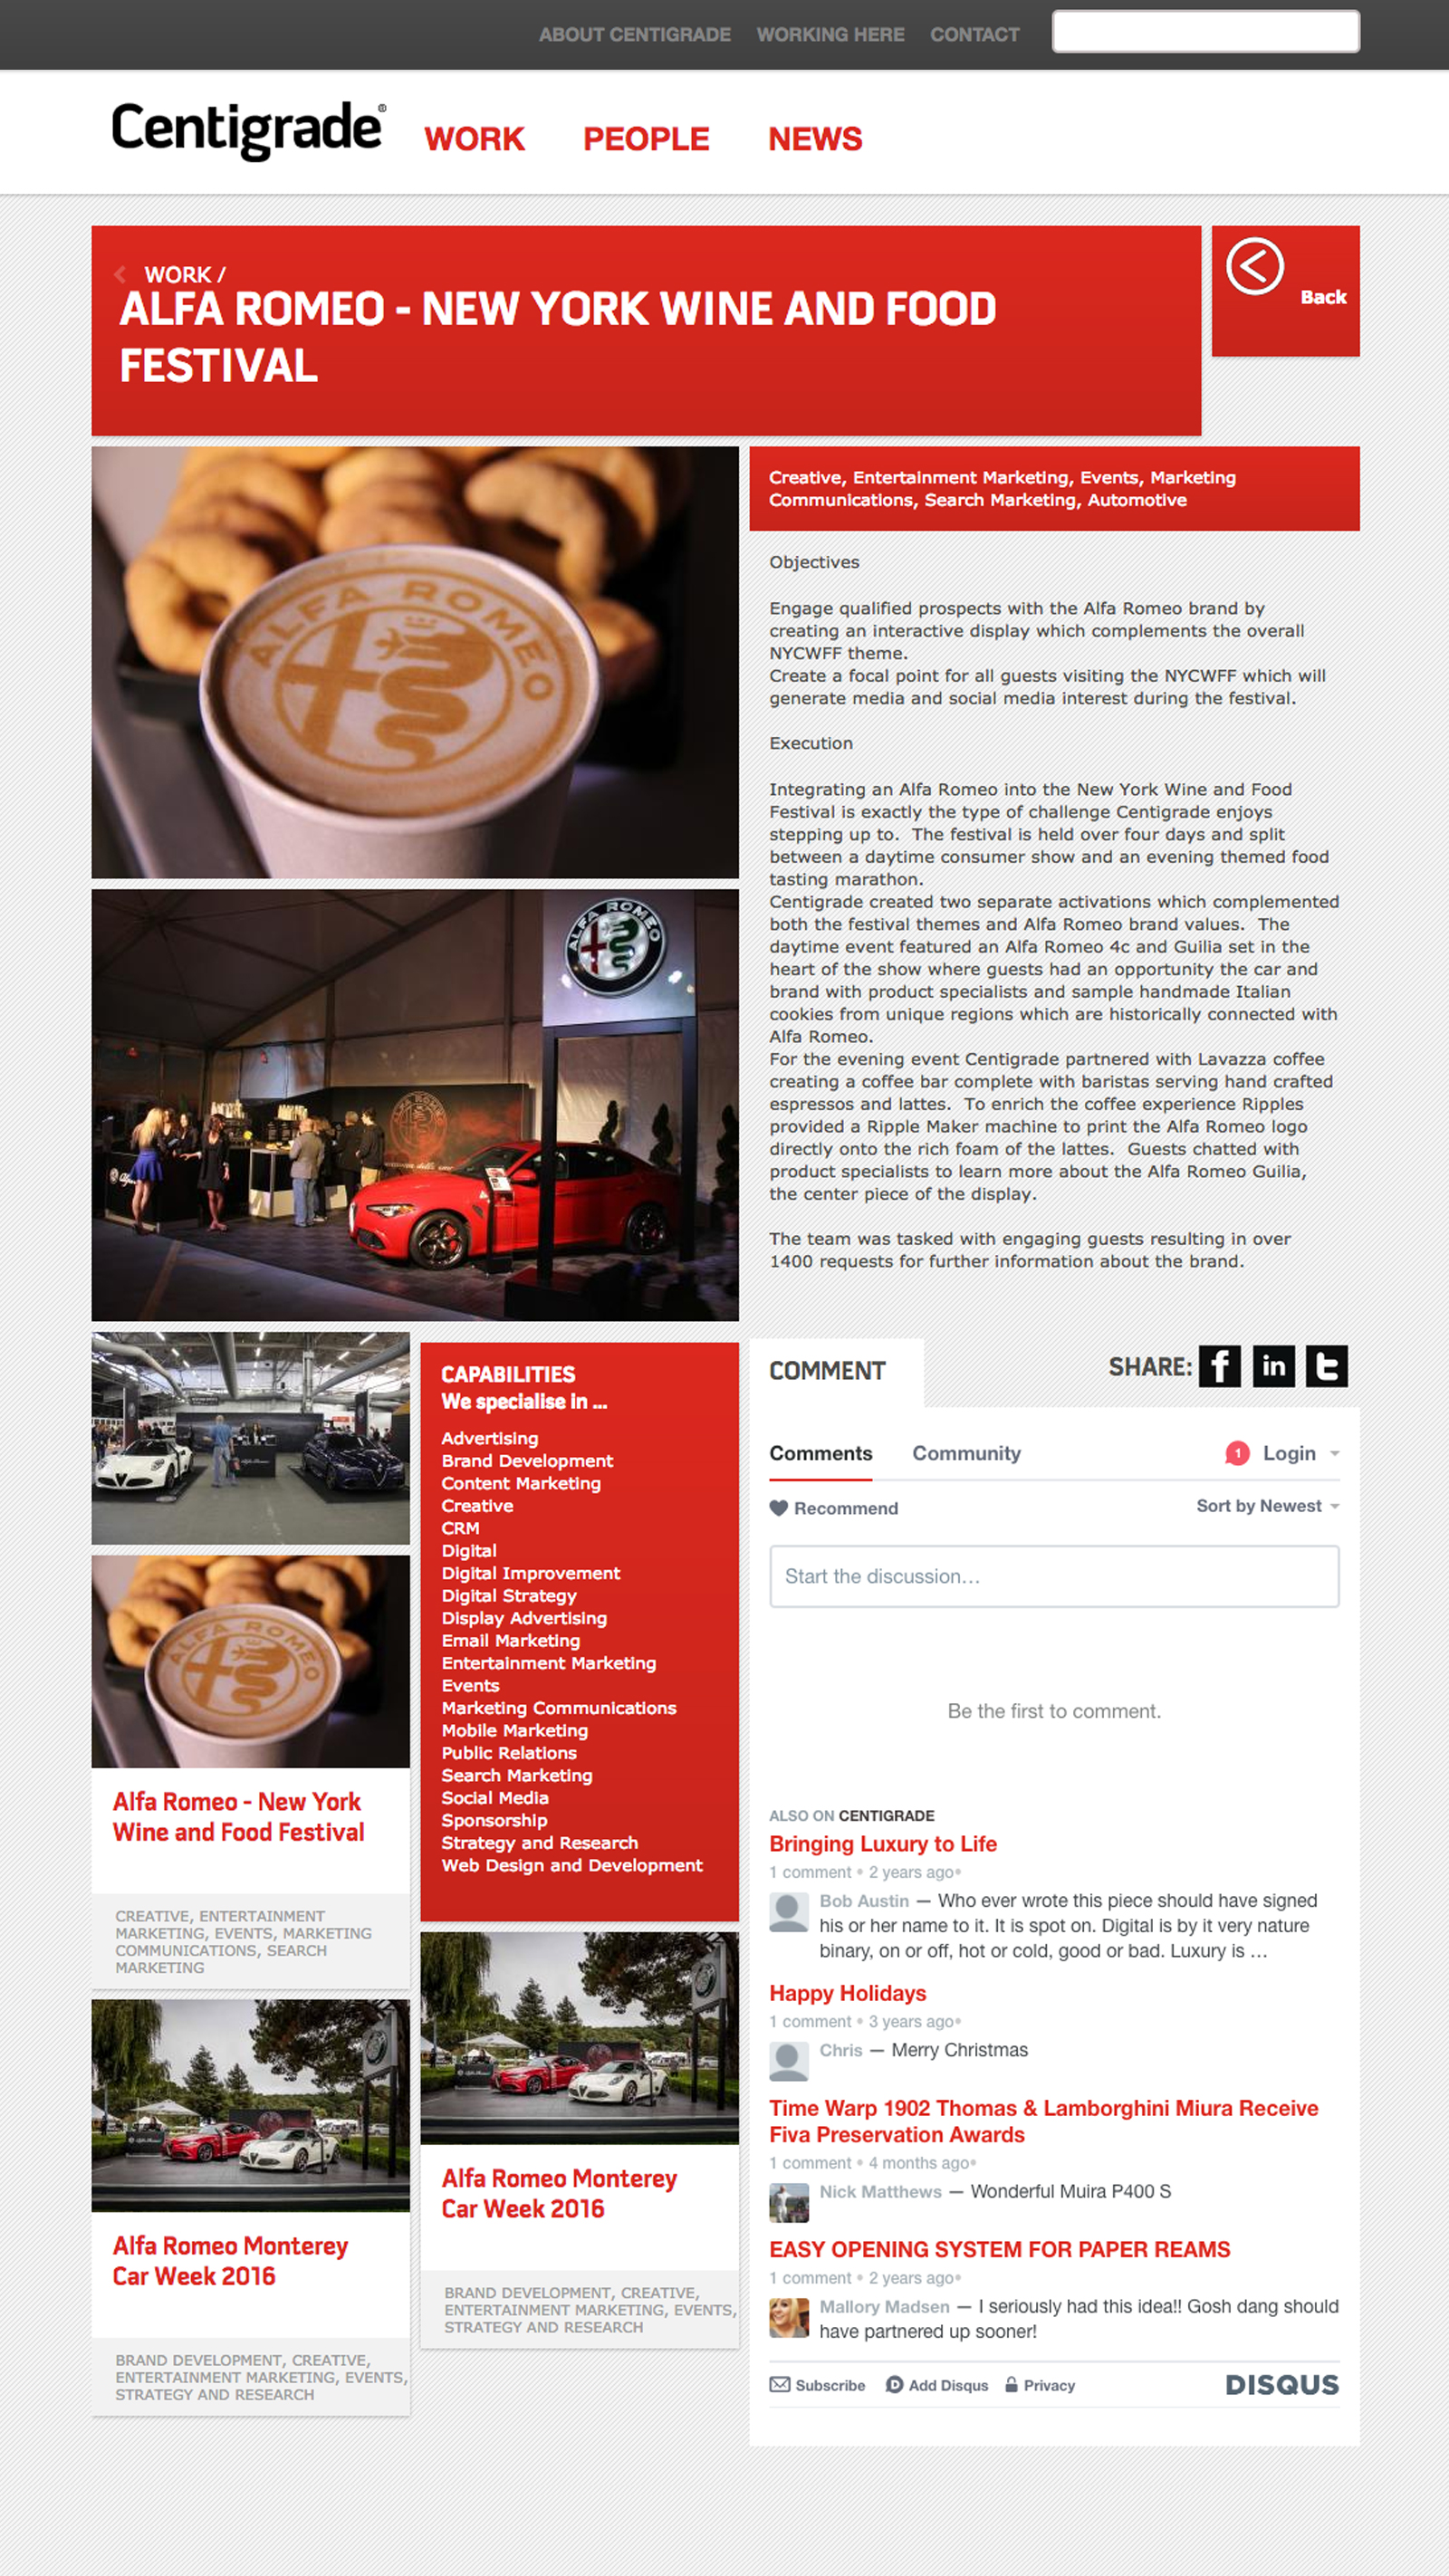 Centigrade - News Page. Drupal based web-portal with responsive design.